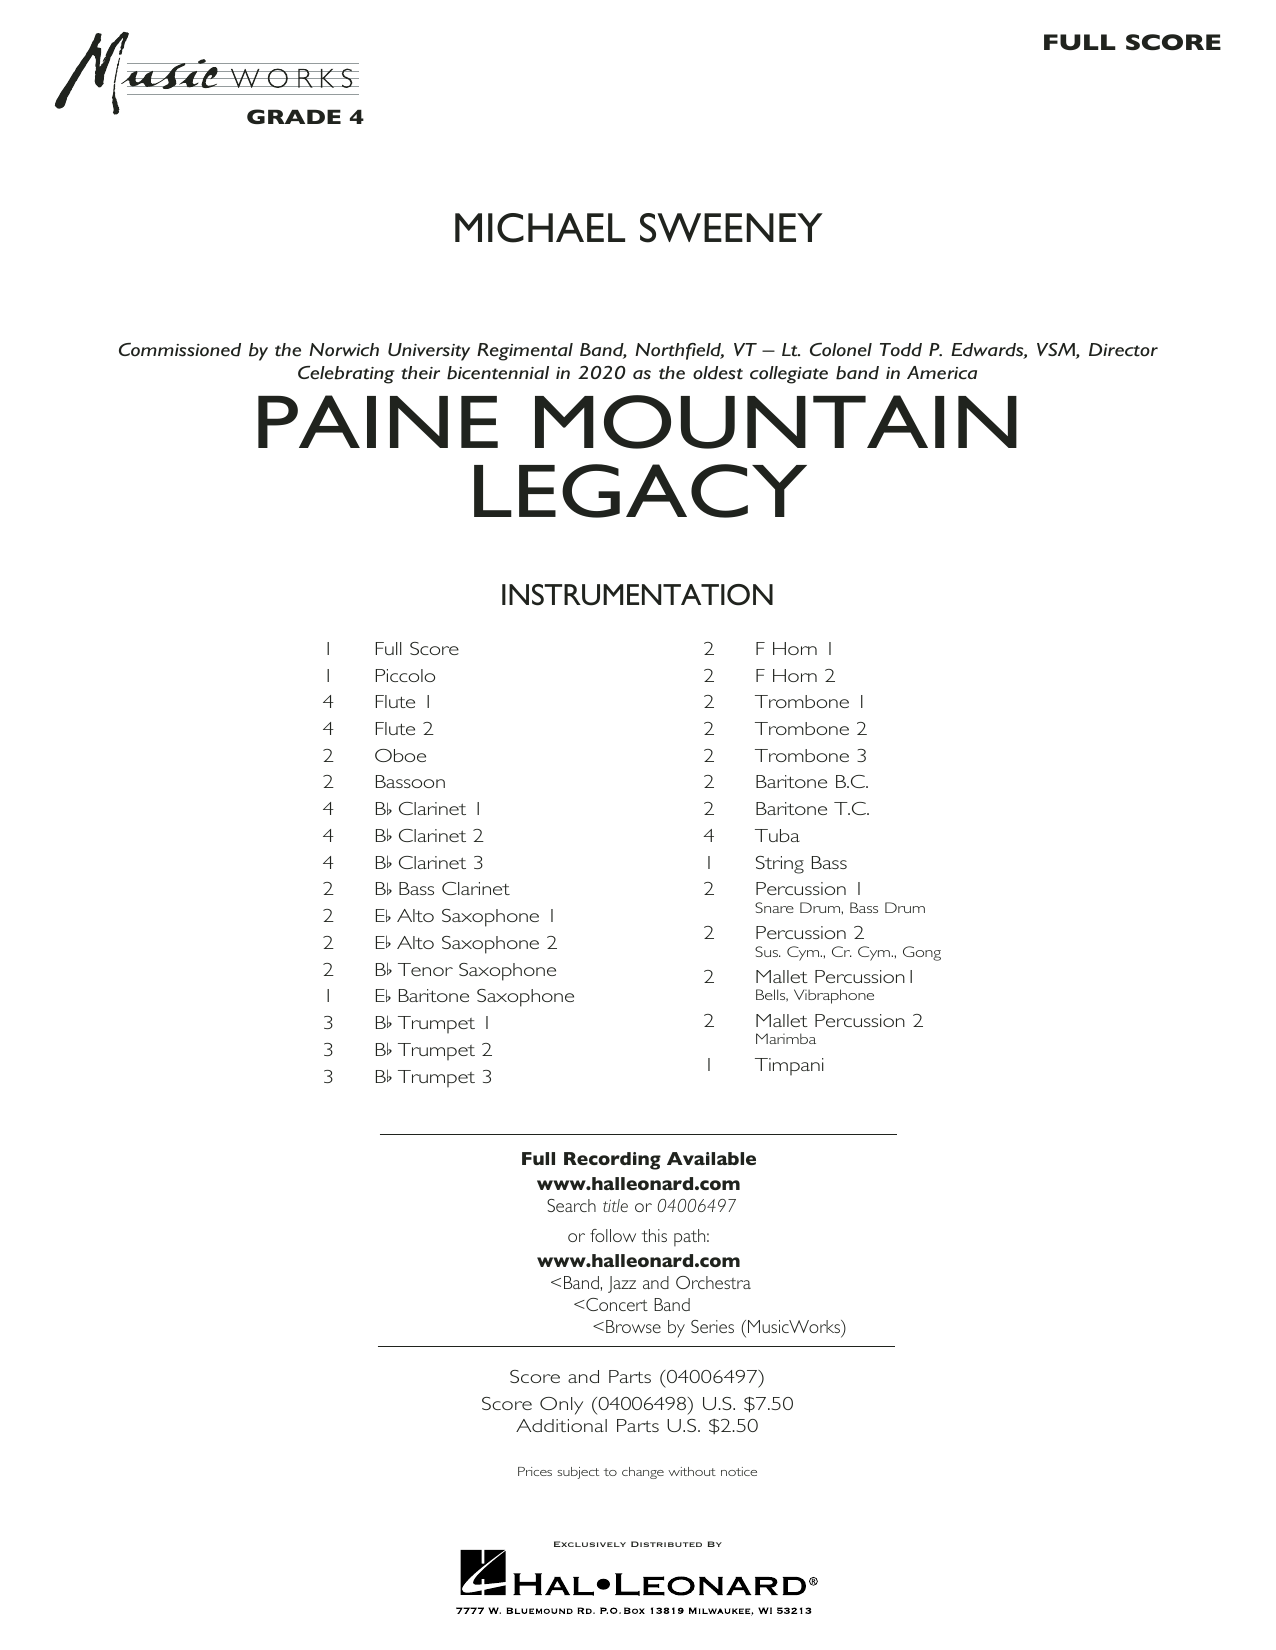 Michael Sweeney Paine Mountain Legacy - Conductor Score (Full Score) sheet music notes and chords. Download Printable PDF.